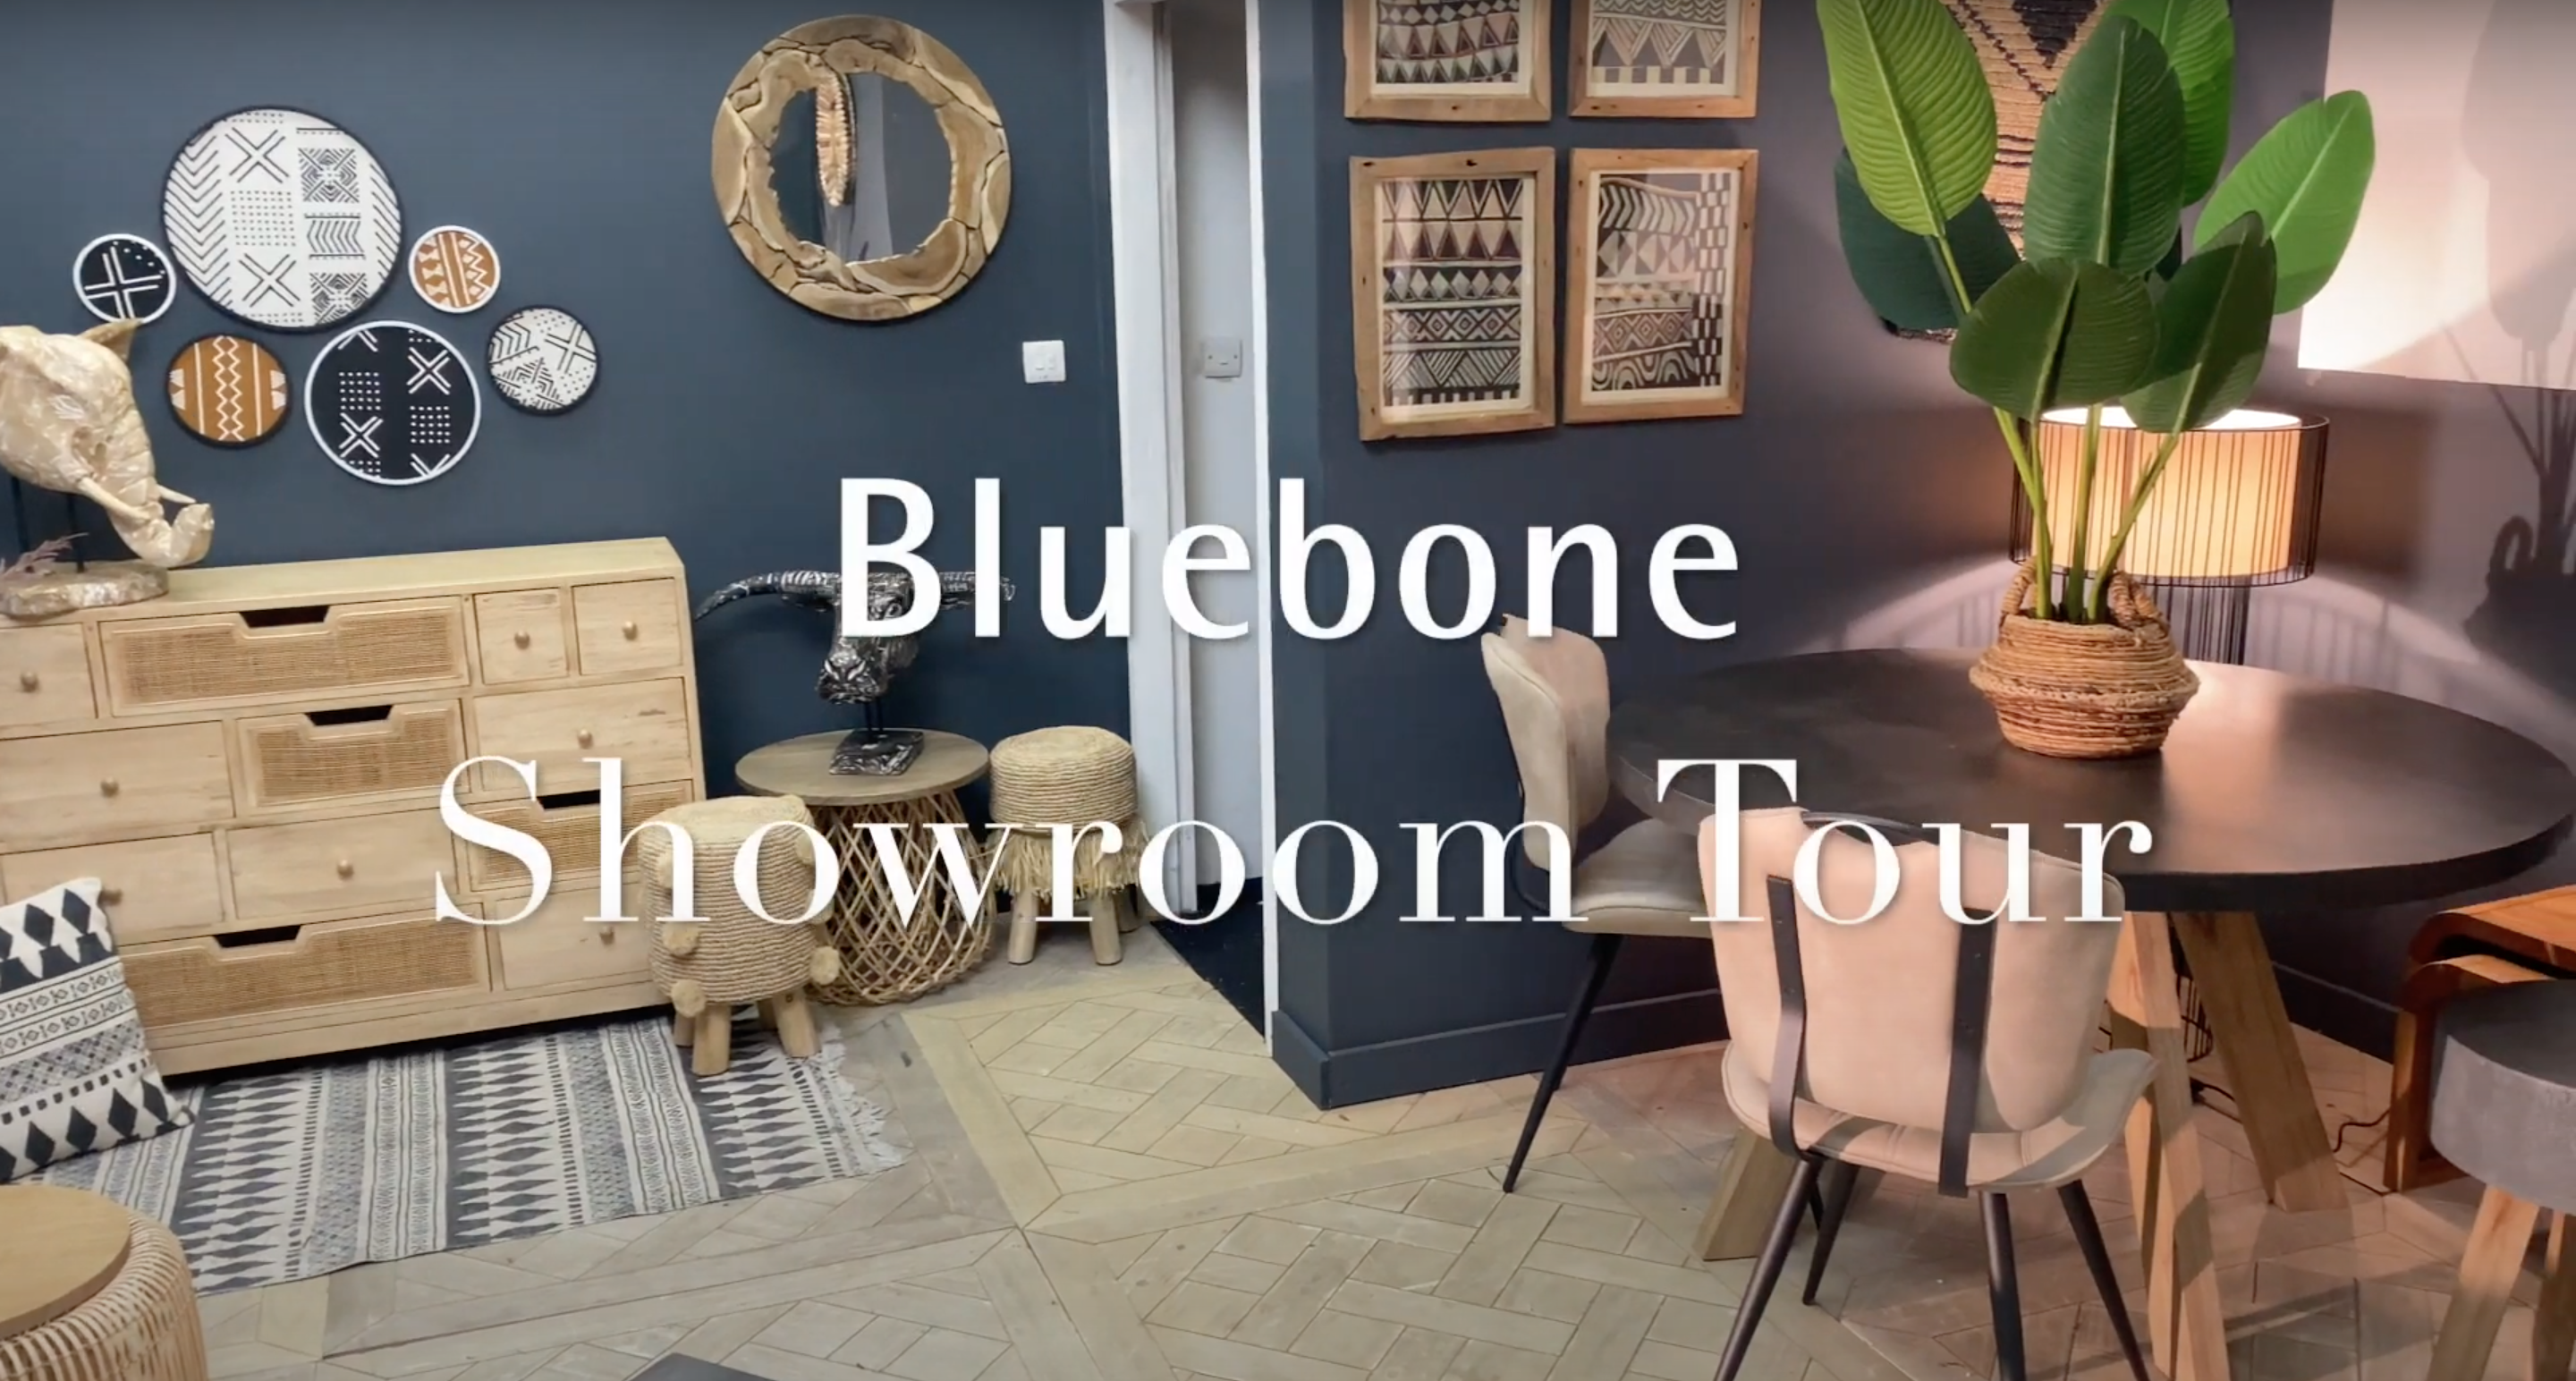 Bluebone Showroom Tour